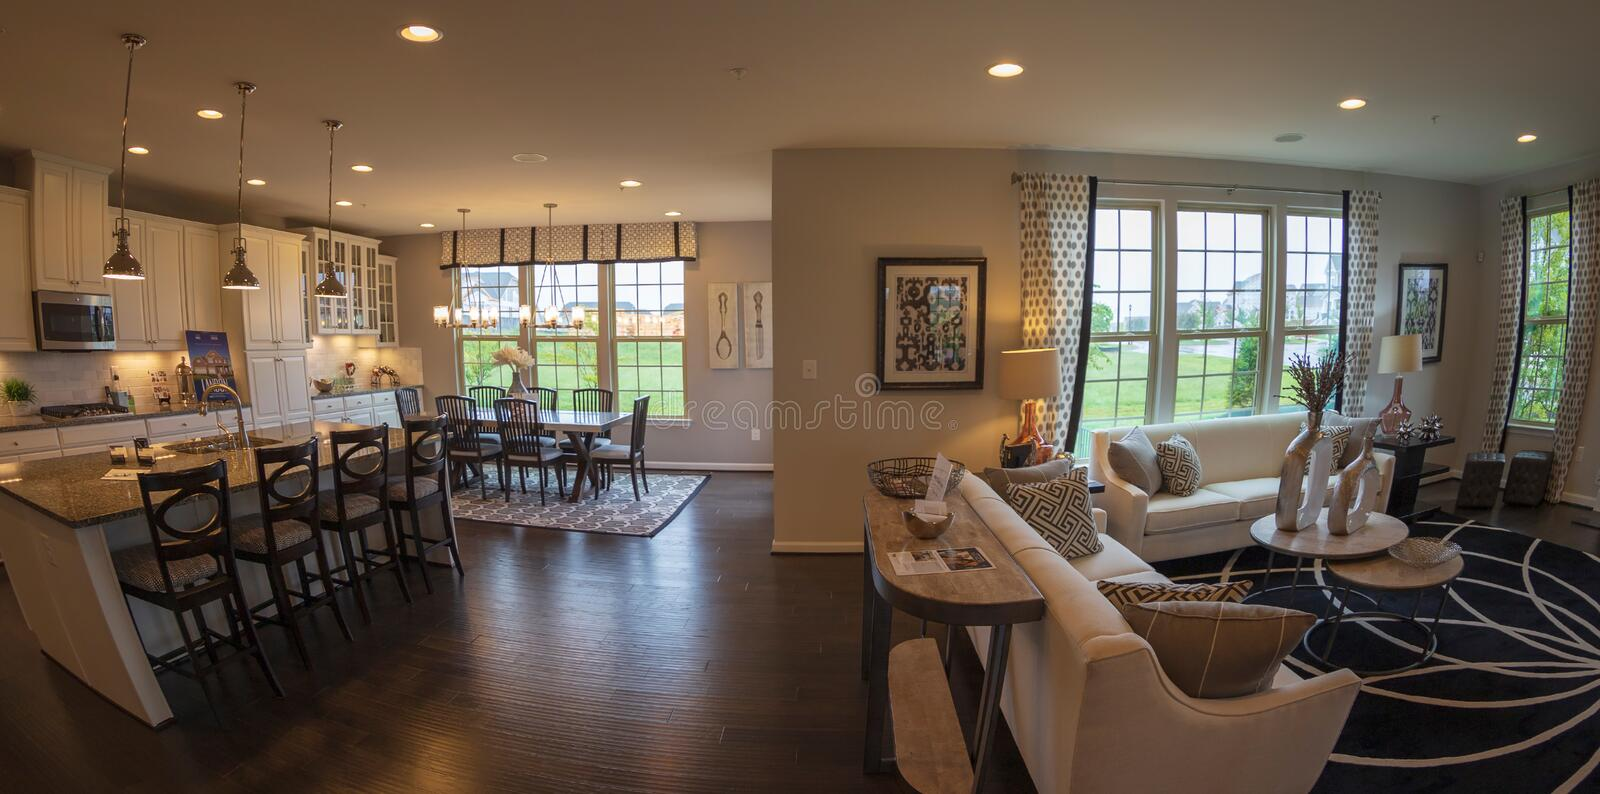 Interior of American Homes in Maryland, USA. MARYLAND, USA - SEPTEMBER 10, 2018: Interior of American Homes in Maryland. Relaxation space and kitchen with dining stock image